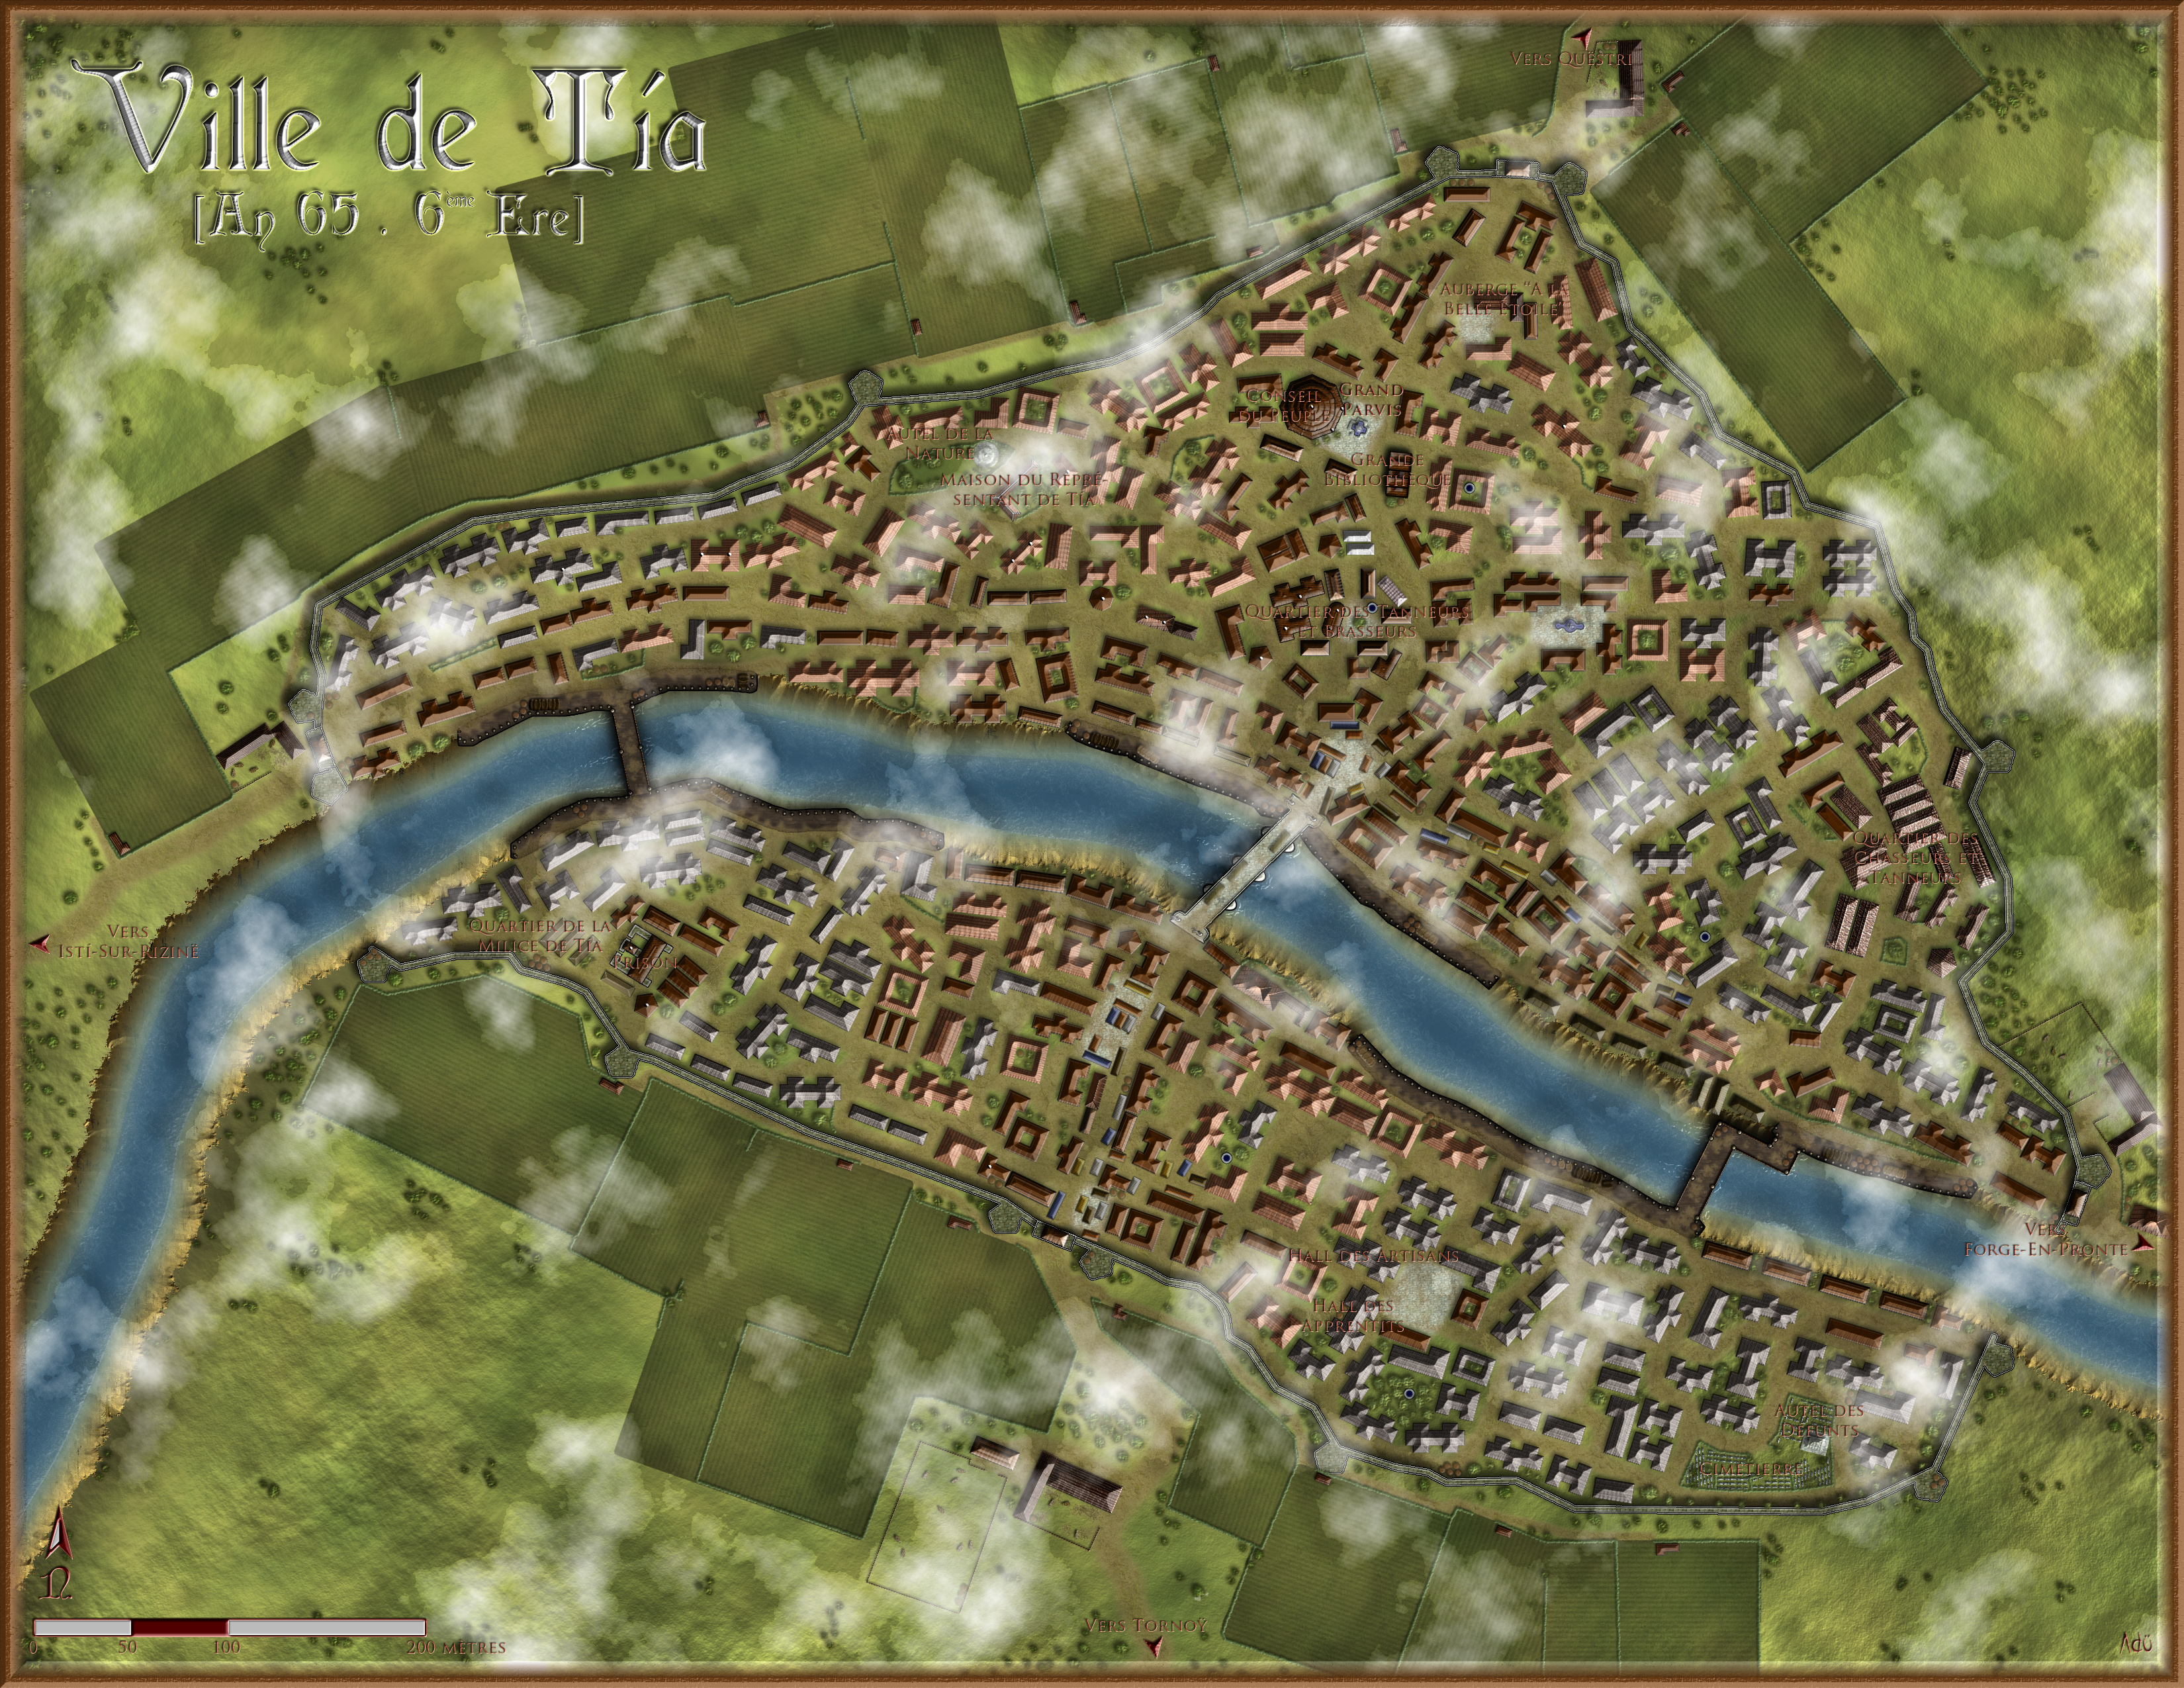 The city of T�a